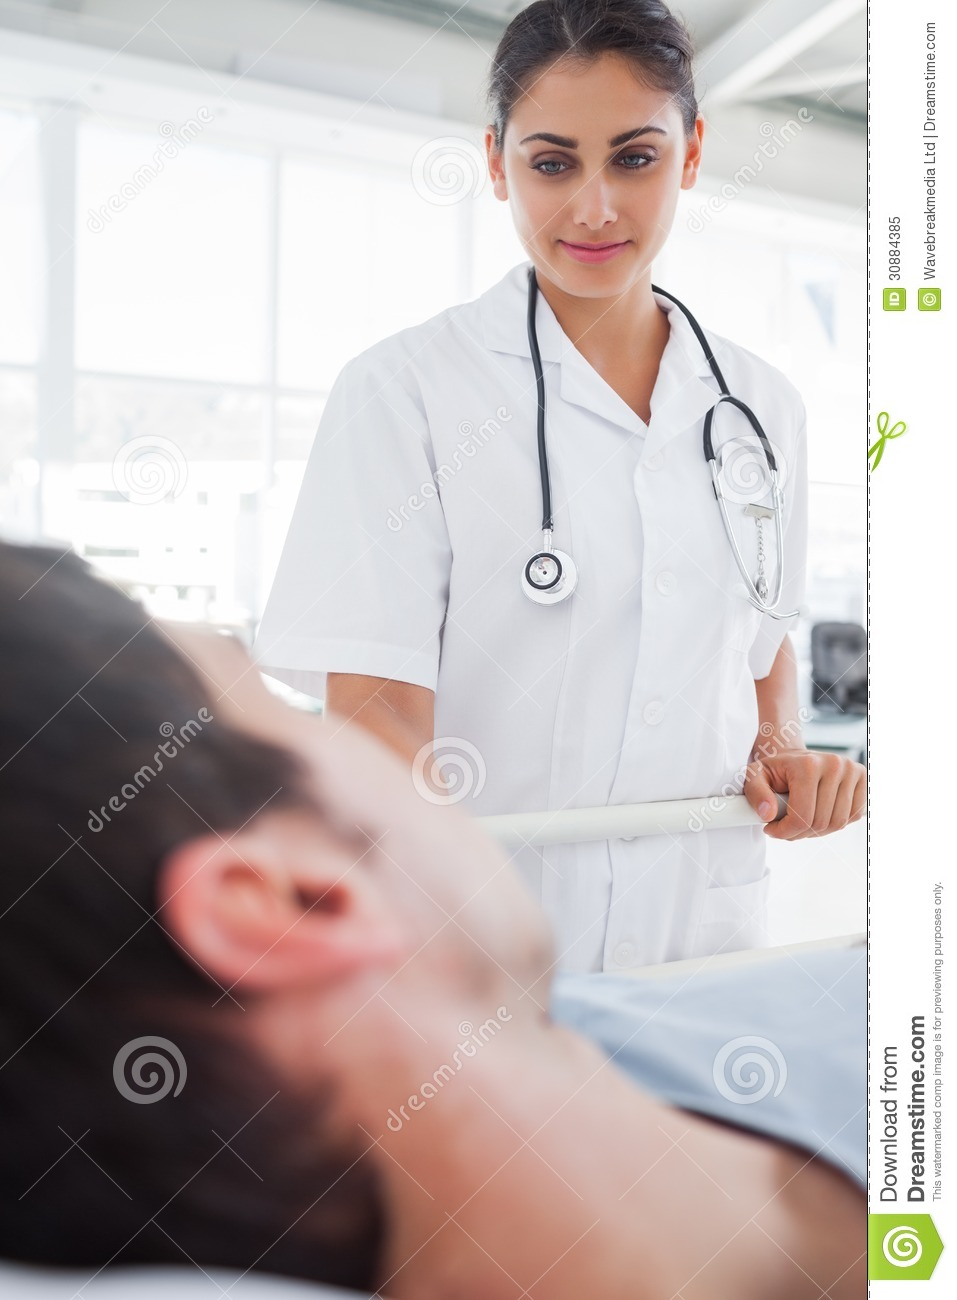 Smiling Nurse Taking Care Of A Patient Royalty Free Stock ...